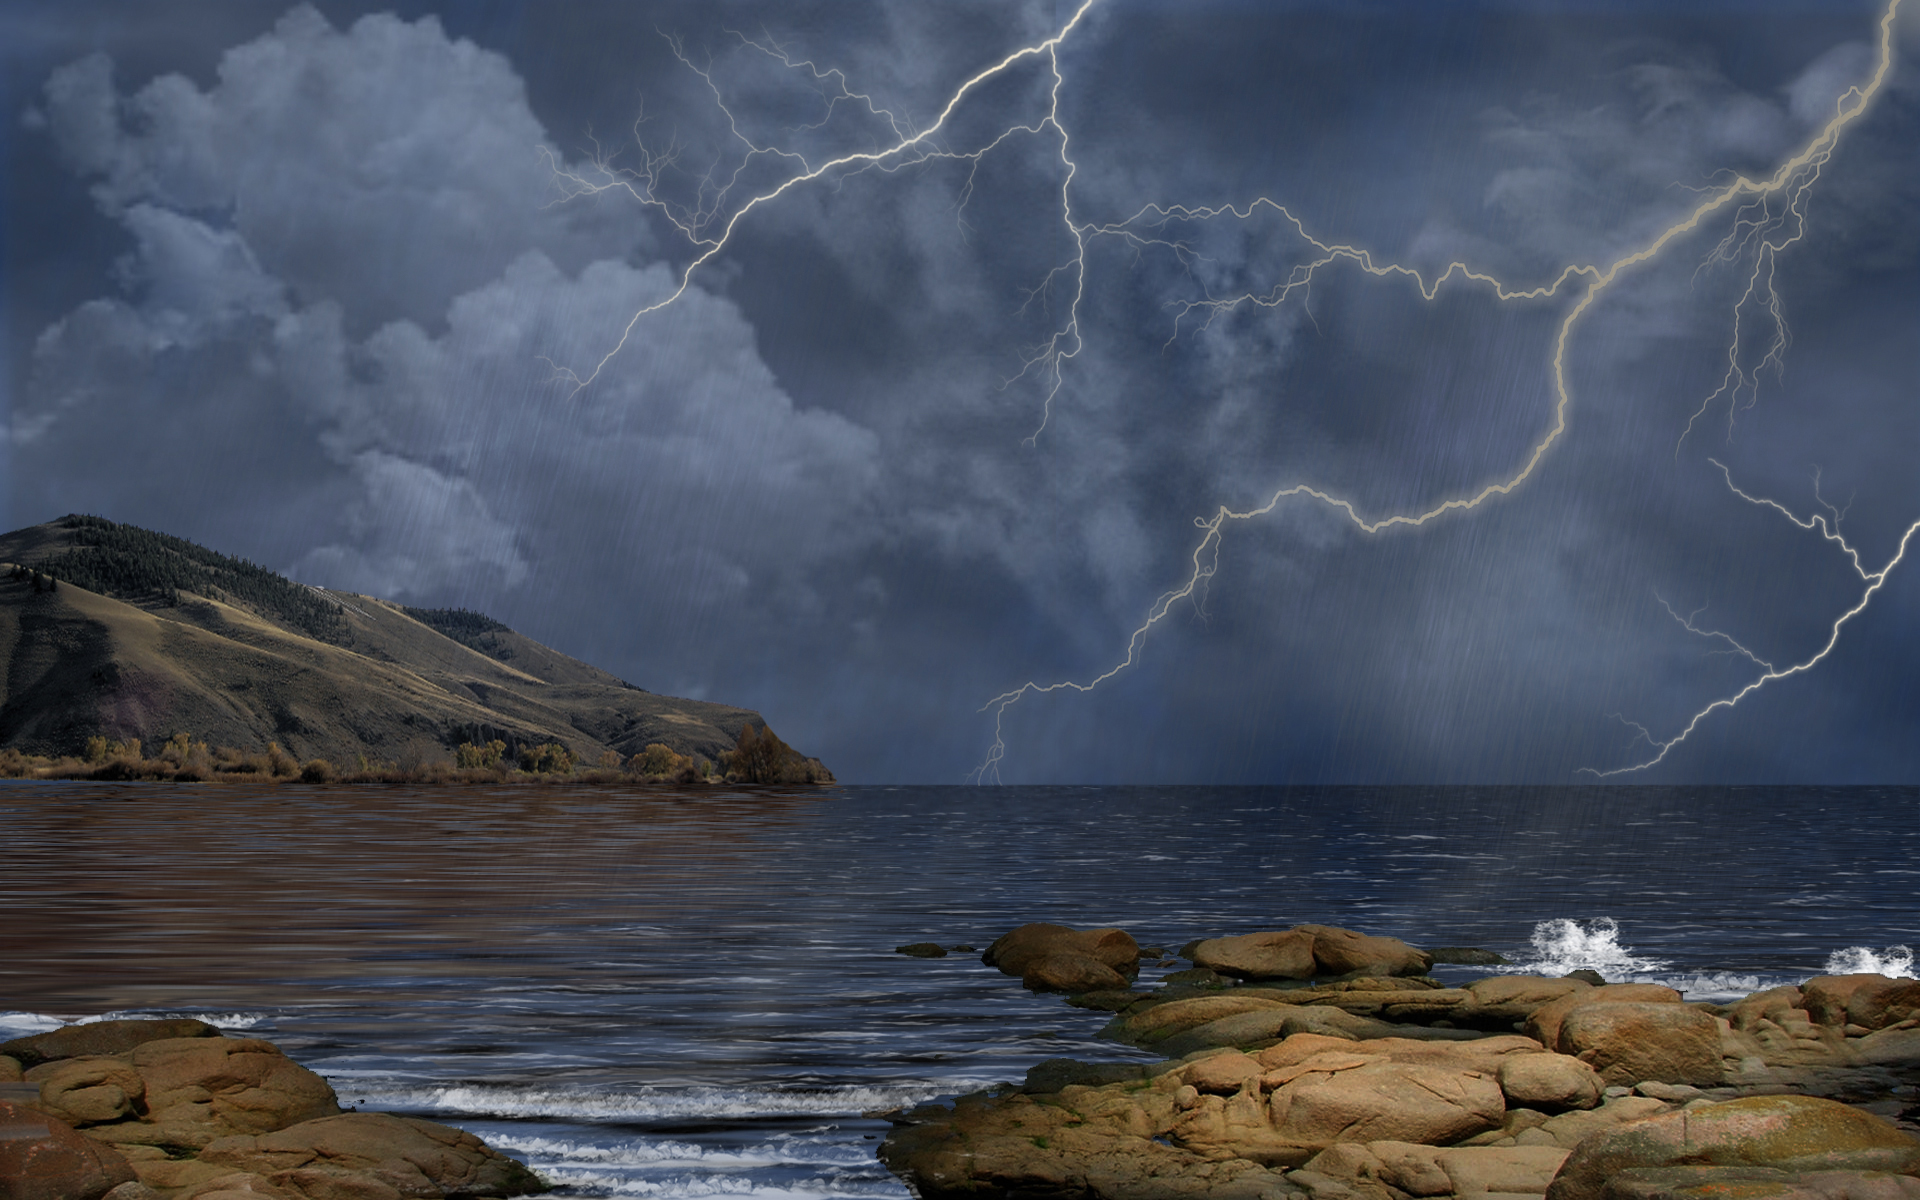 Lightning thunderstorm Landscape Wallpaper Desktop Background 1920x1200